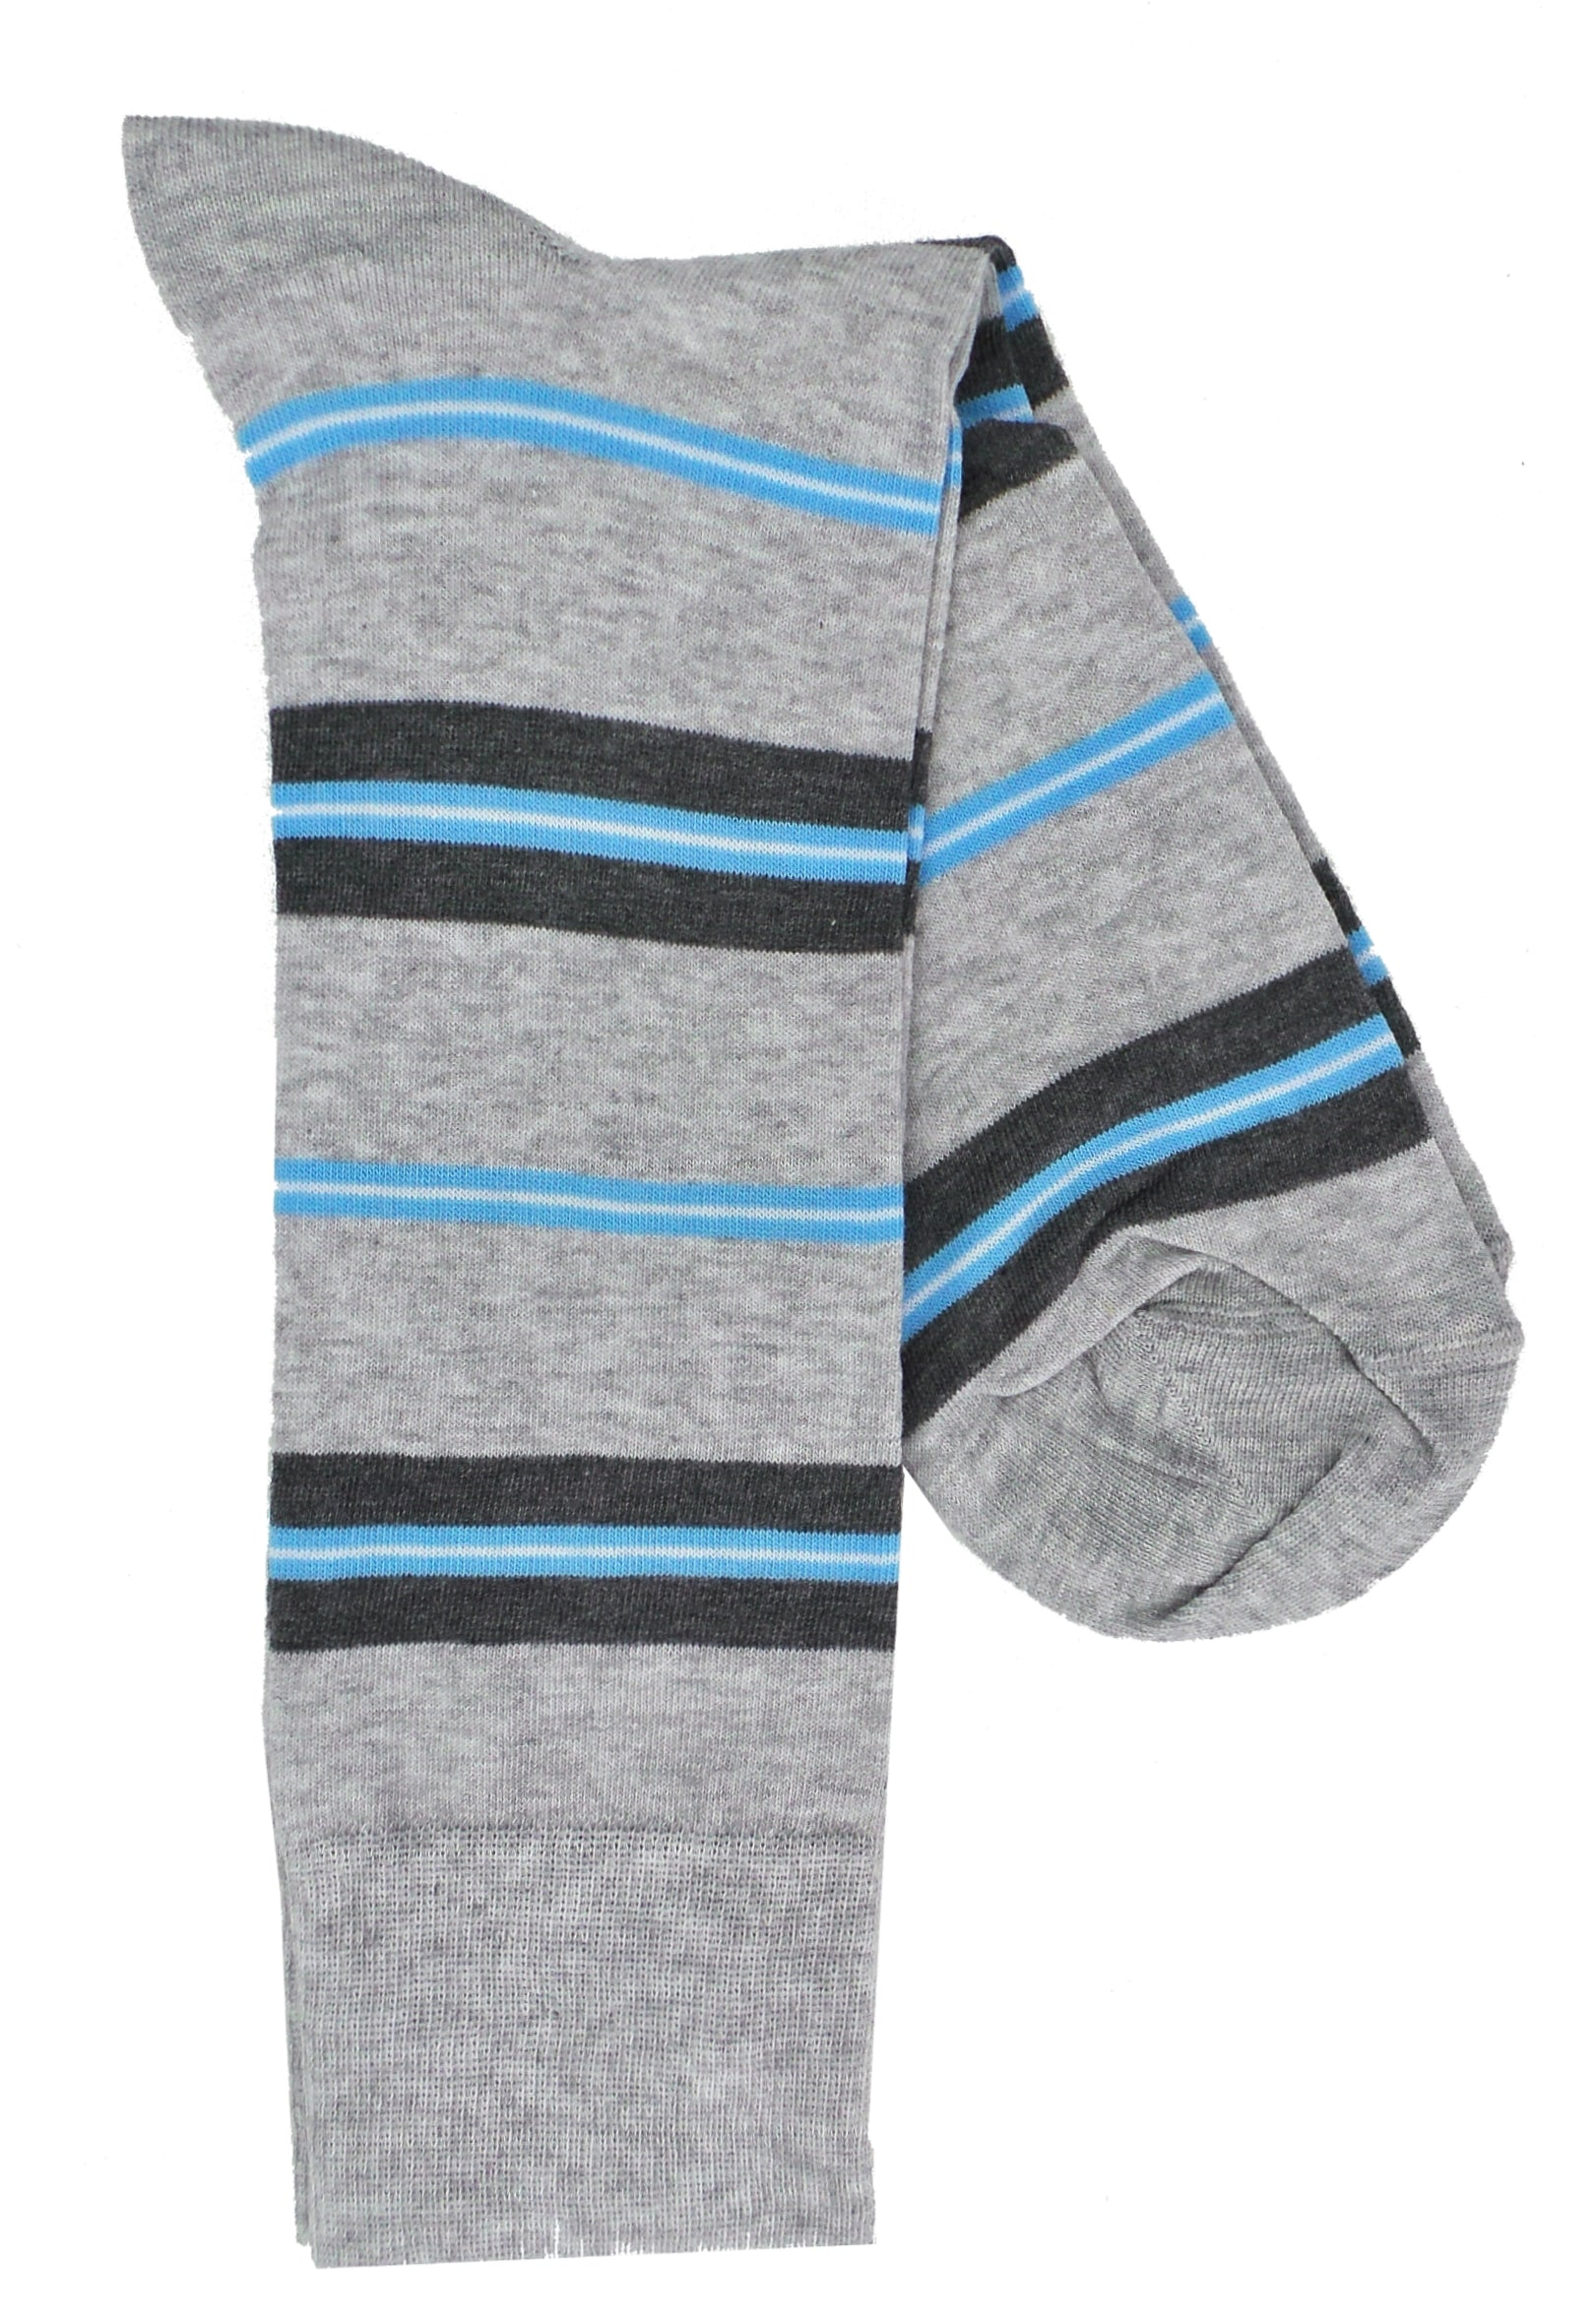 Lorenzo Uomo Simple Stripe Combed Cotton Blend Dress Socks